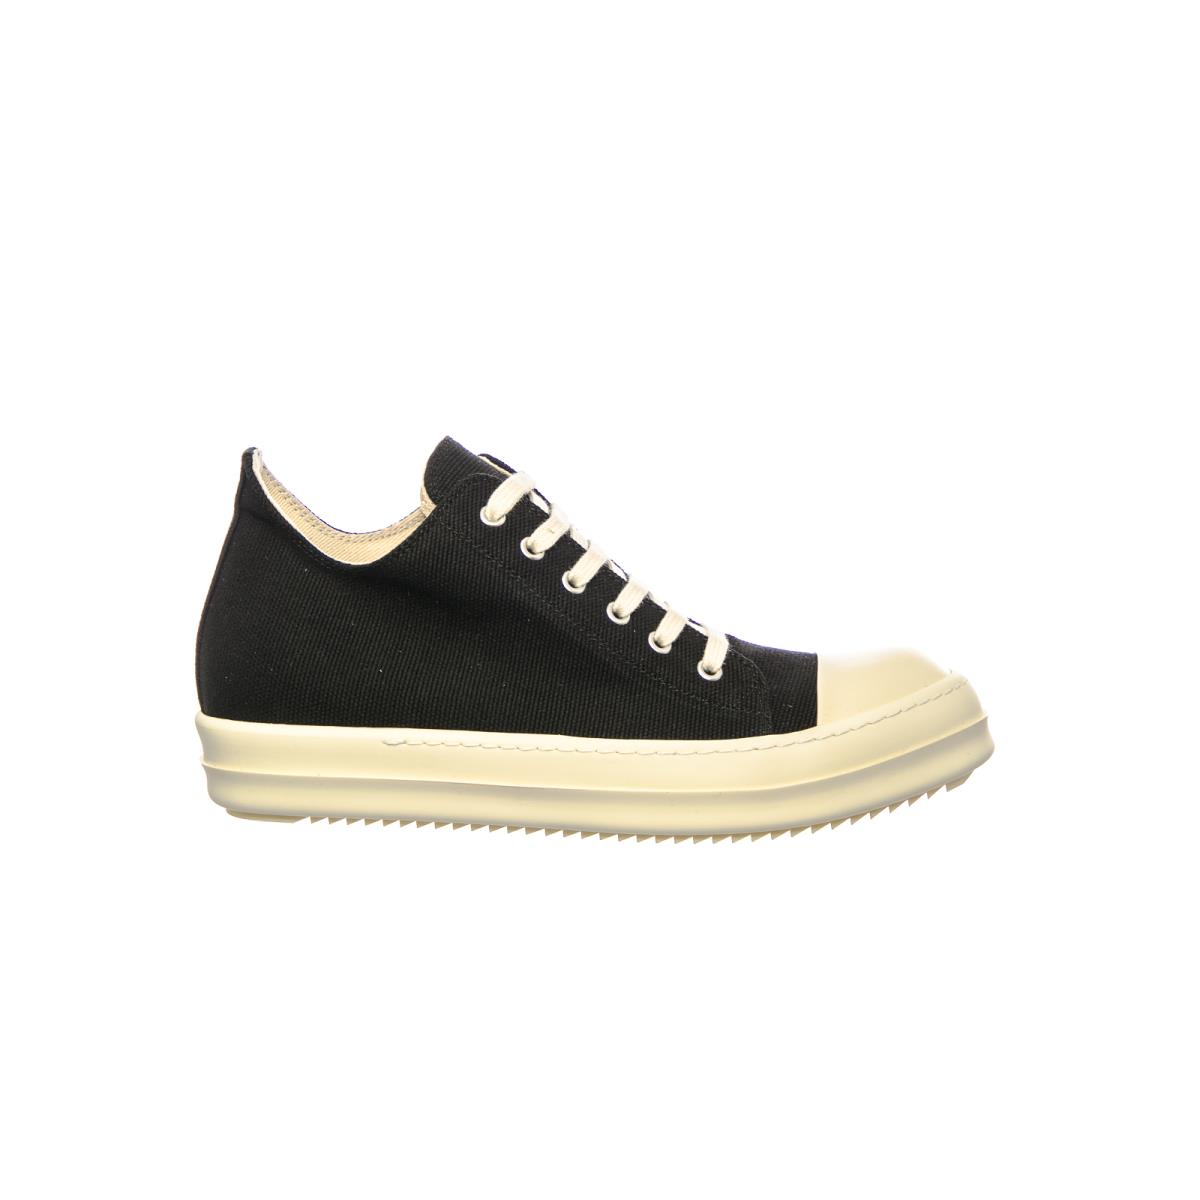 save off 816af 7e400 DRKSHDW BY RICK OWENS SNEAKERS